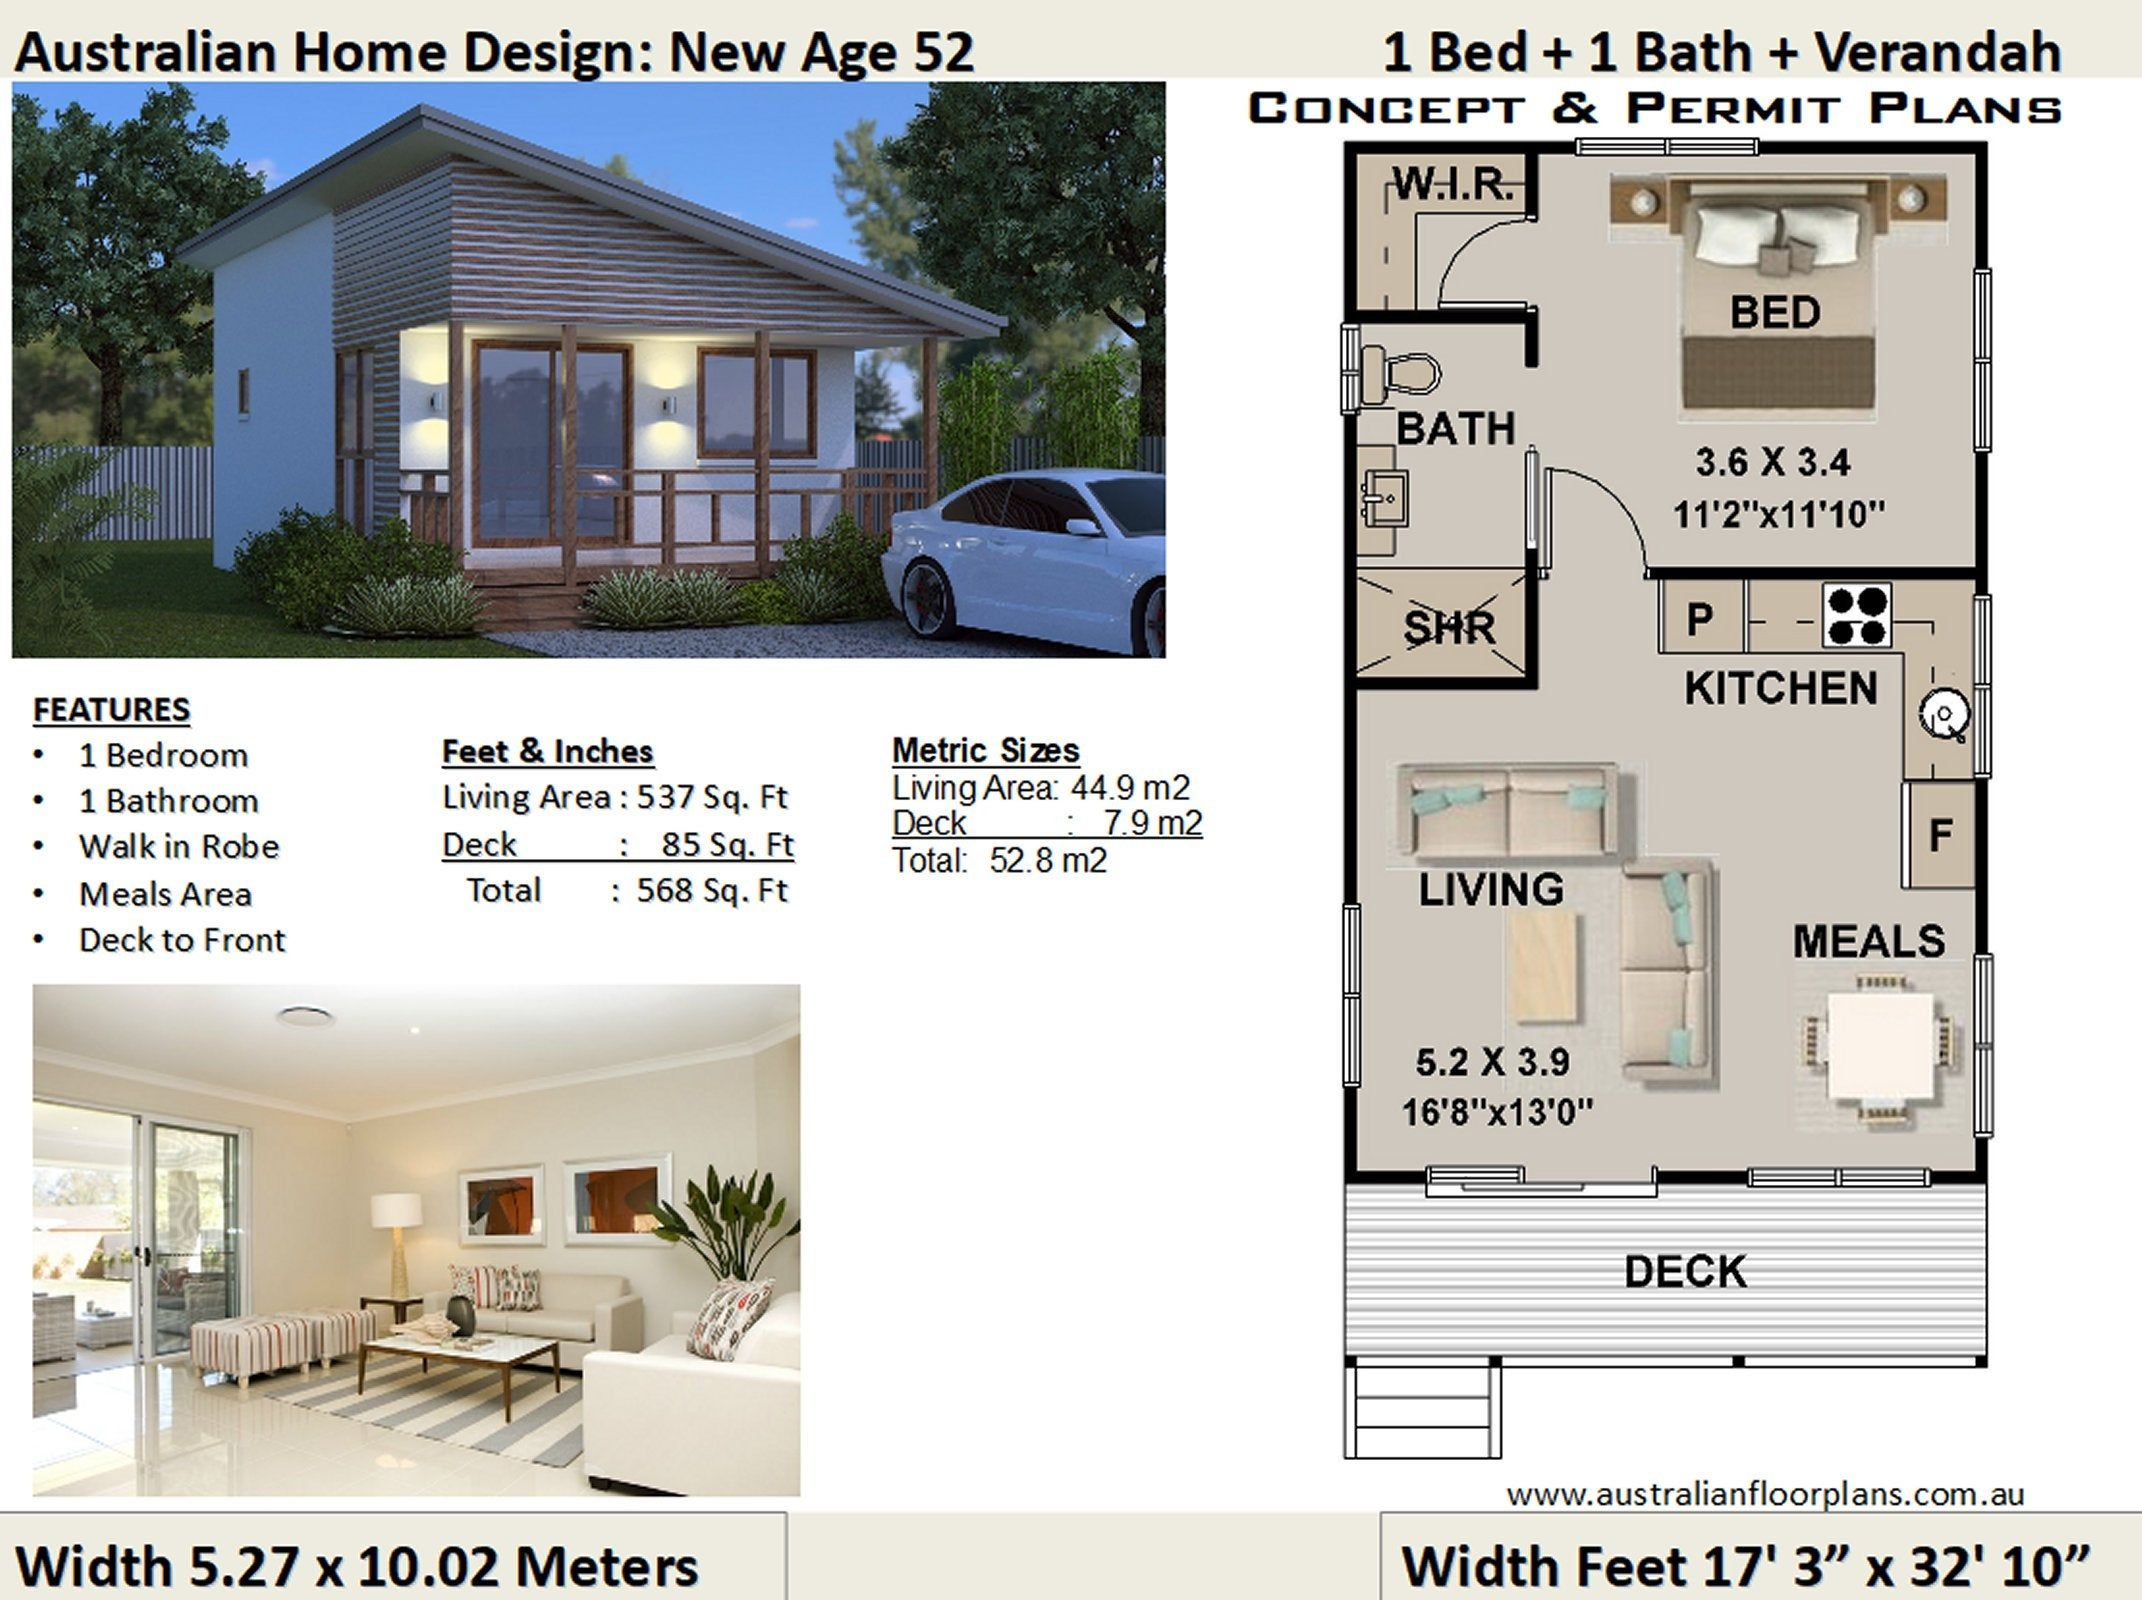 Small House Plan 52 New Age 1 Bedroom Home Design Concept House Plans For Sale House Plans For Sale House Design House Plans